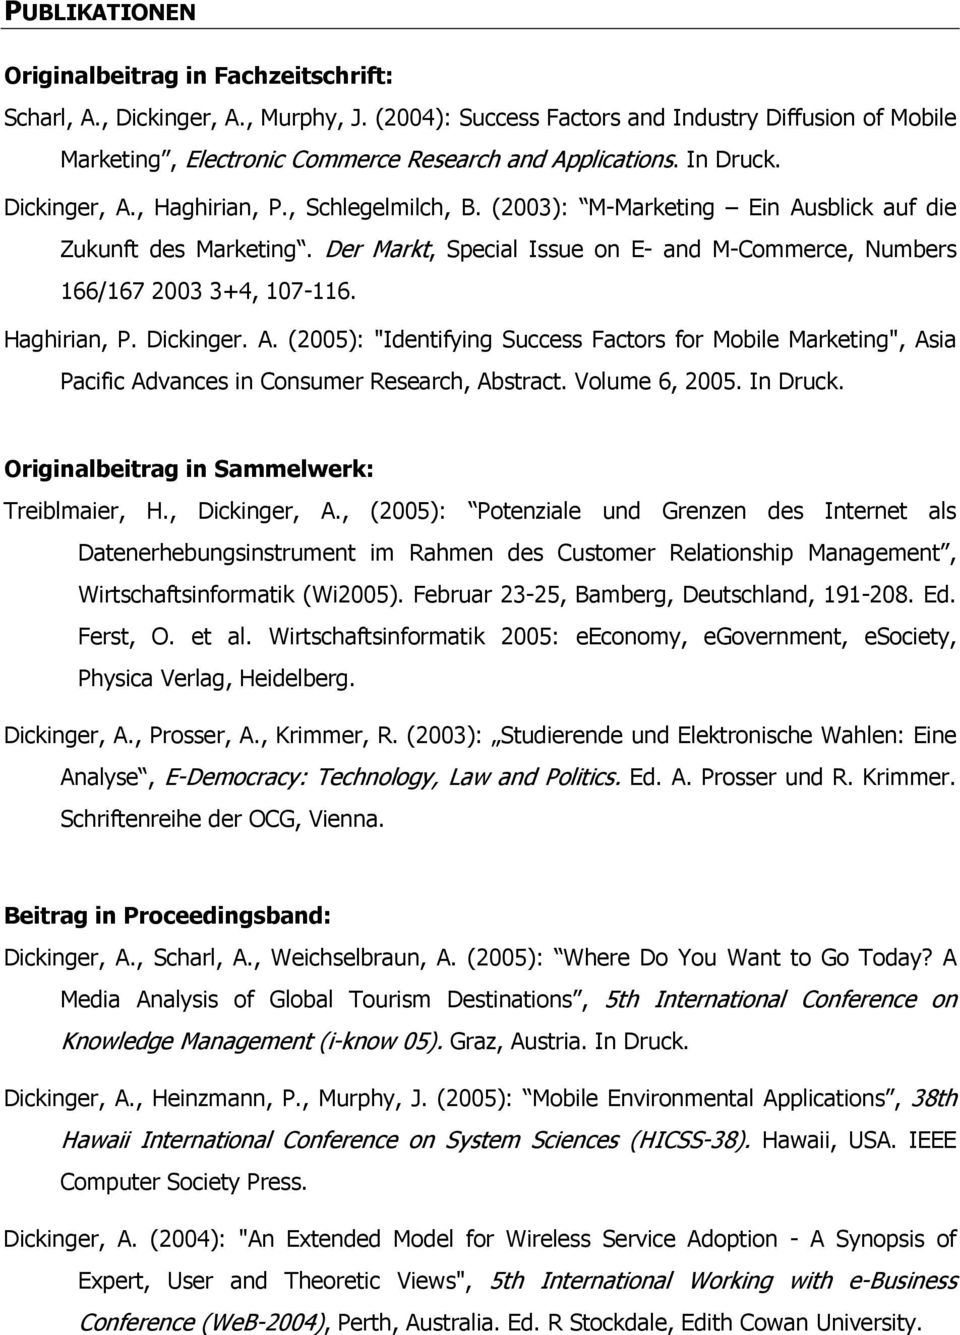 "(2003): M-Marketing Ein Ausblick auf die Zukunft des Marketing. Der Markt, Special Issue on E- and M-Commerce, Numbers 166/167 2003 3+4, 107-116. Haghirian, P. Dickinger. A. (2005): ""Identifying Success Factors for Mobile Marketing"", Asia Pacific Advances in Consumer Research, Abstract."